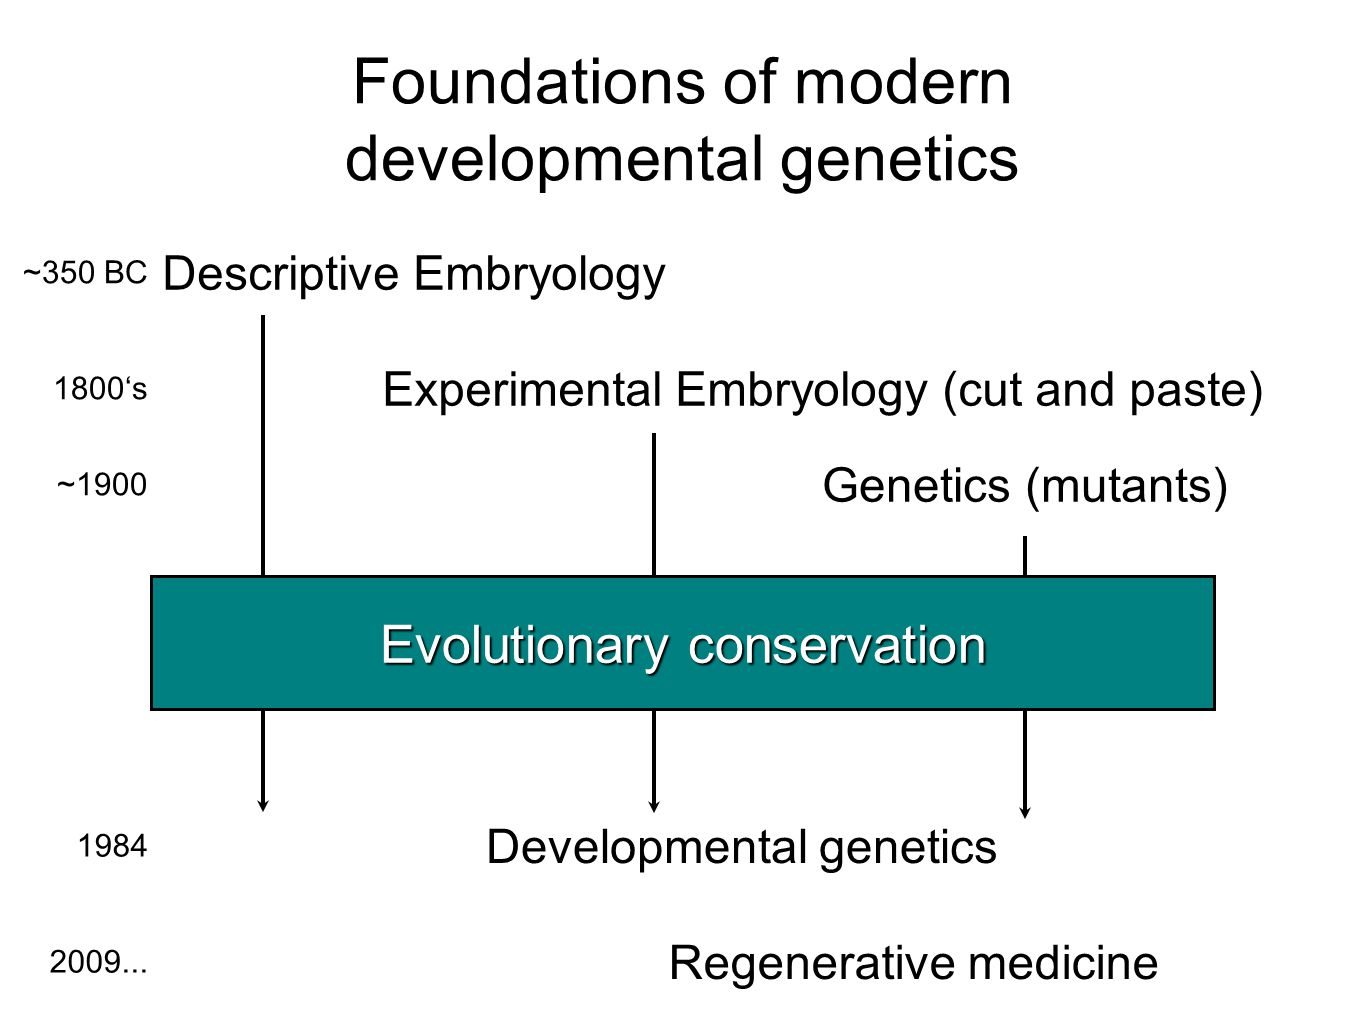 Foundations of modern developmental genetics Descriptive Embryology Experimental Embryology (cut and paste) Genetics (mutants) Developmental genetics Regenerative medicine ~350 BC 1800's ~1900 1984 2009...